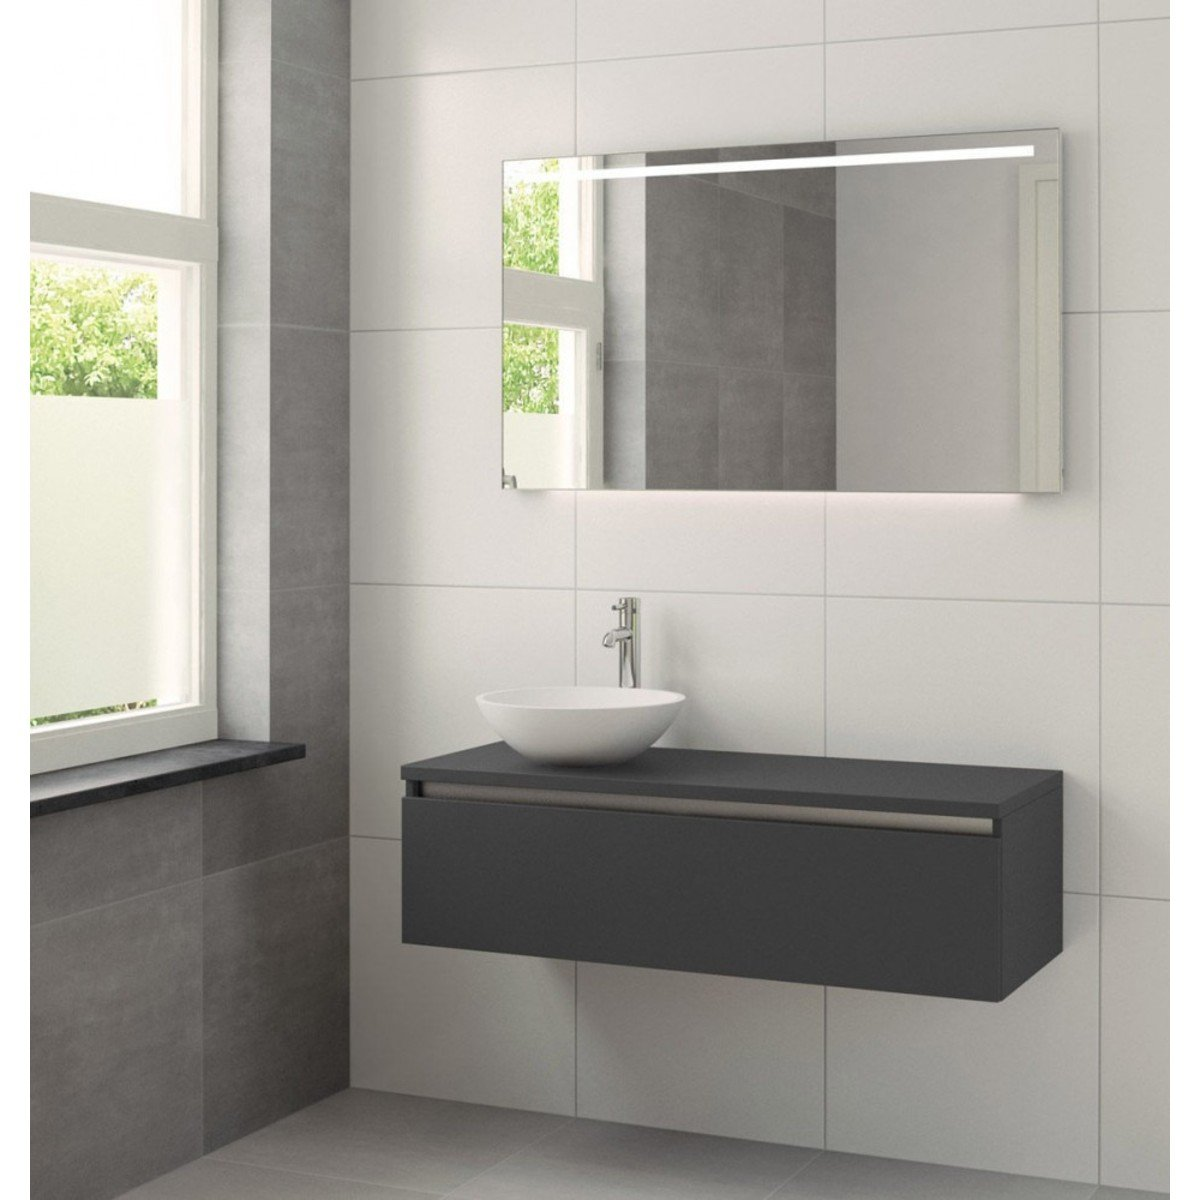 bruynzeel giro set de meuble salle de bain 120cm lavabo miroir et clairage led graphite. Black Bedroom Furniture Sets. Home Design Ideas